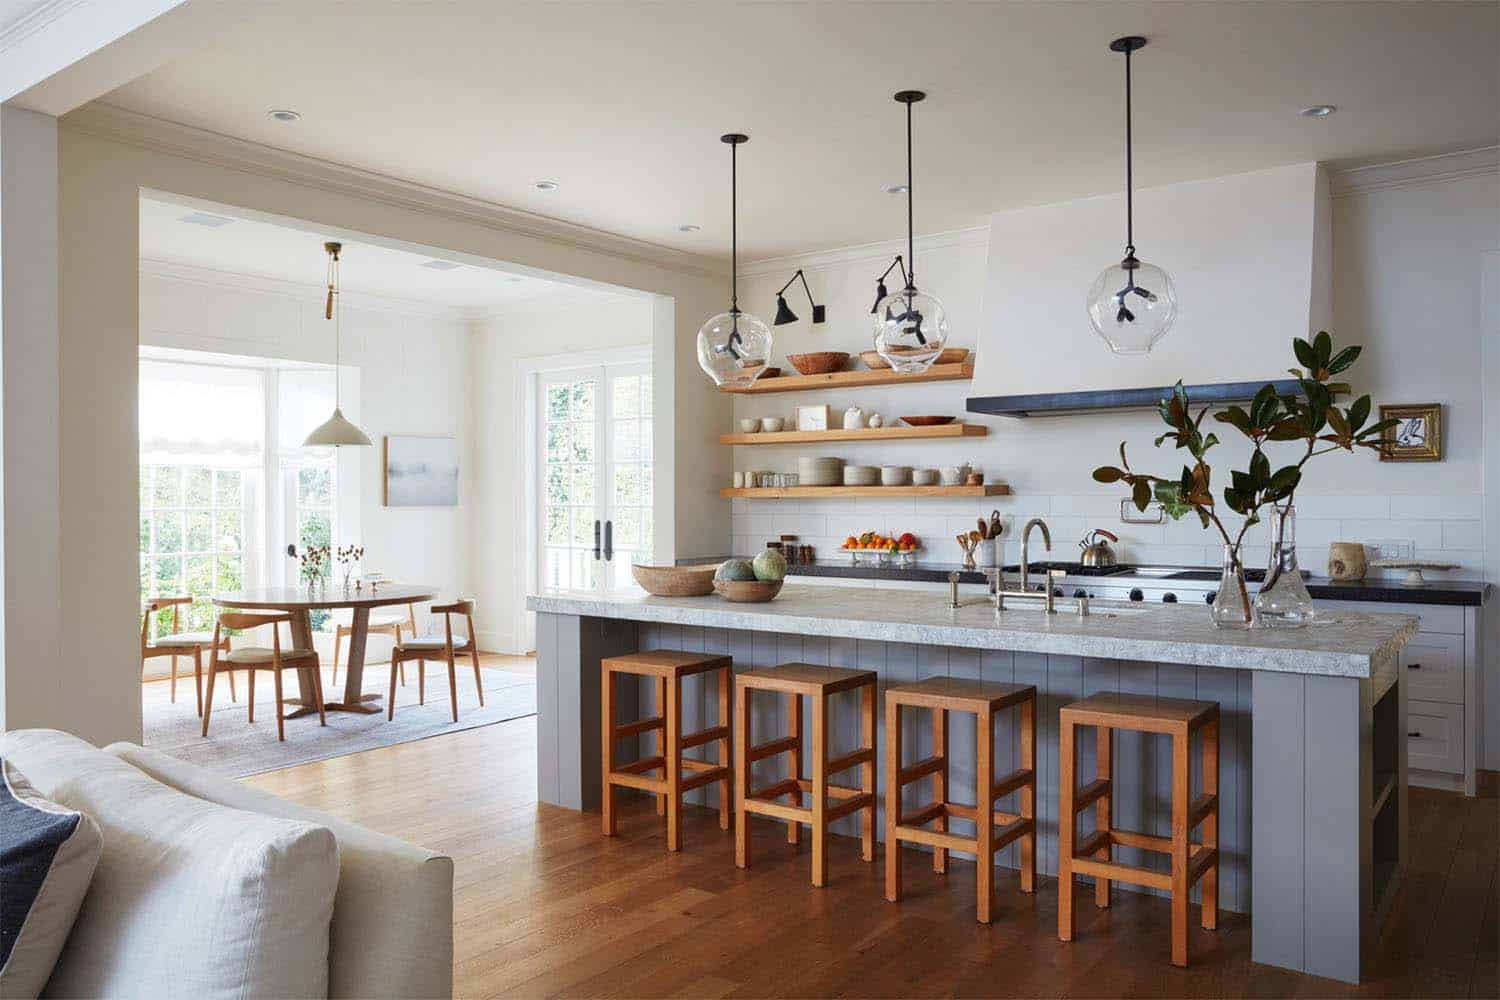 Historic Farmhouse Renovation-Ken Linsteadt Architects-04-1 Kindesign